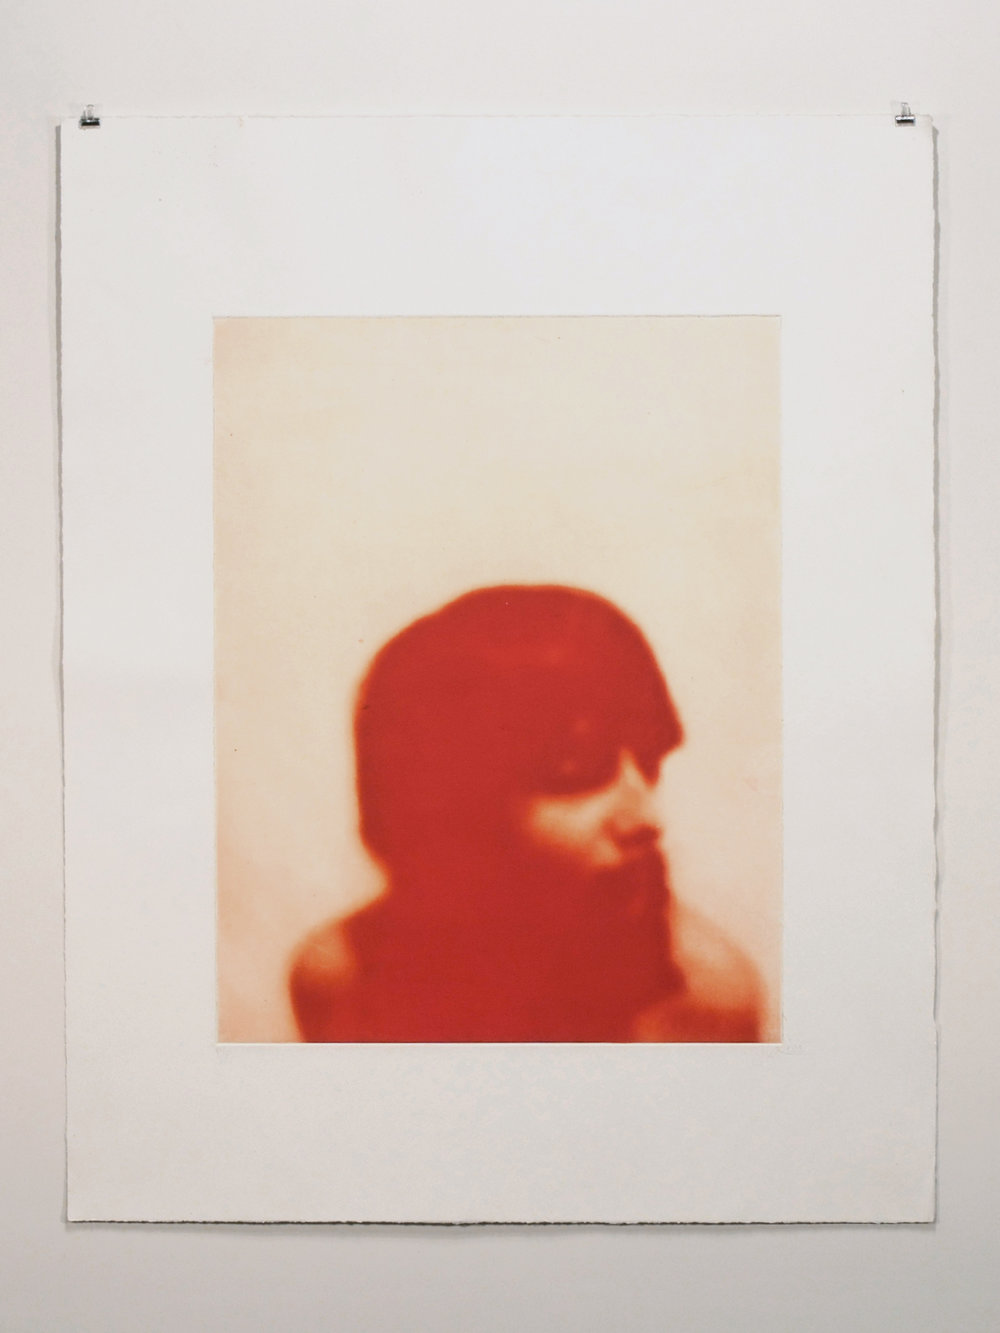 20 x 26 photogravure on Somerset Satin with gampi chine-collé